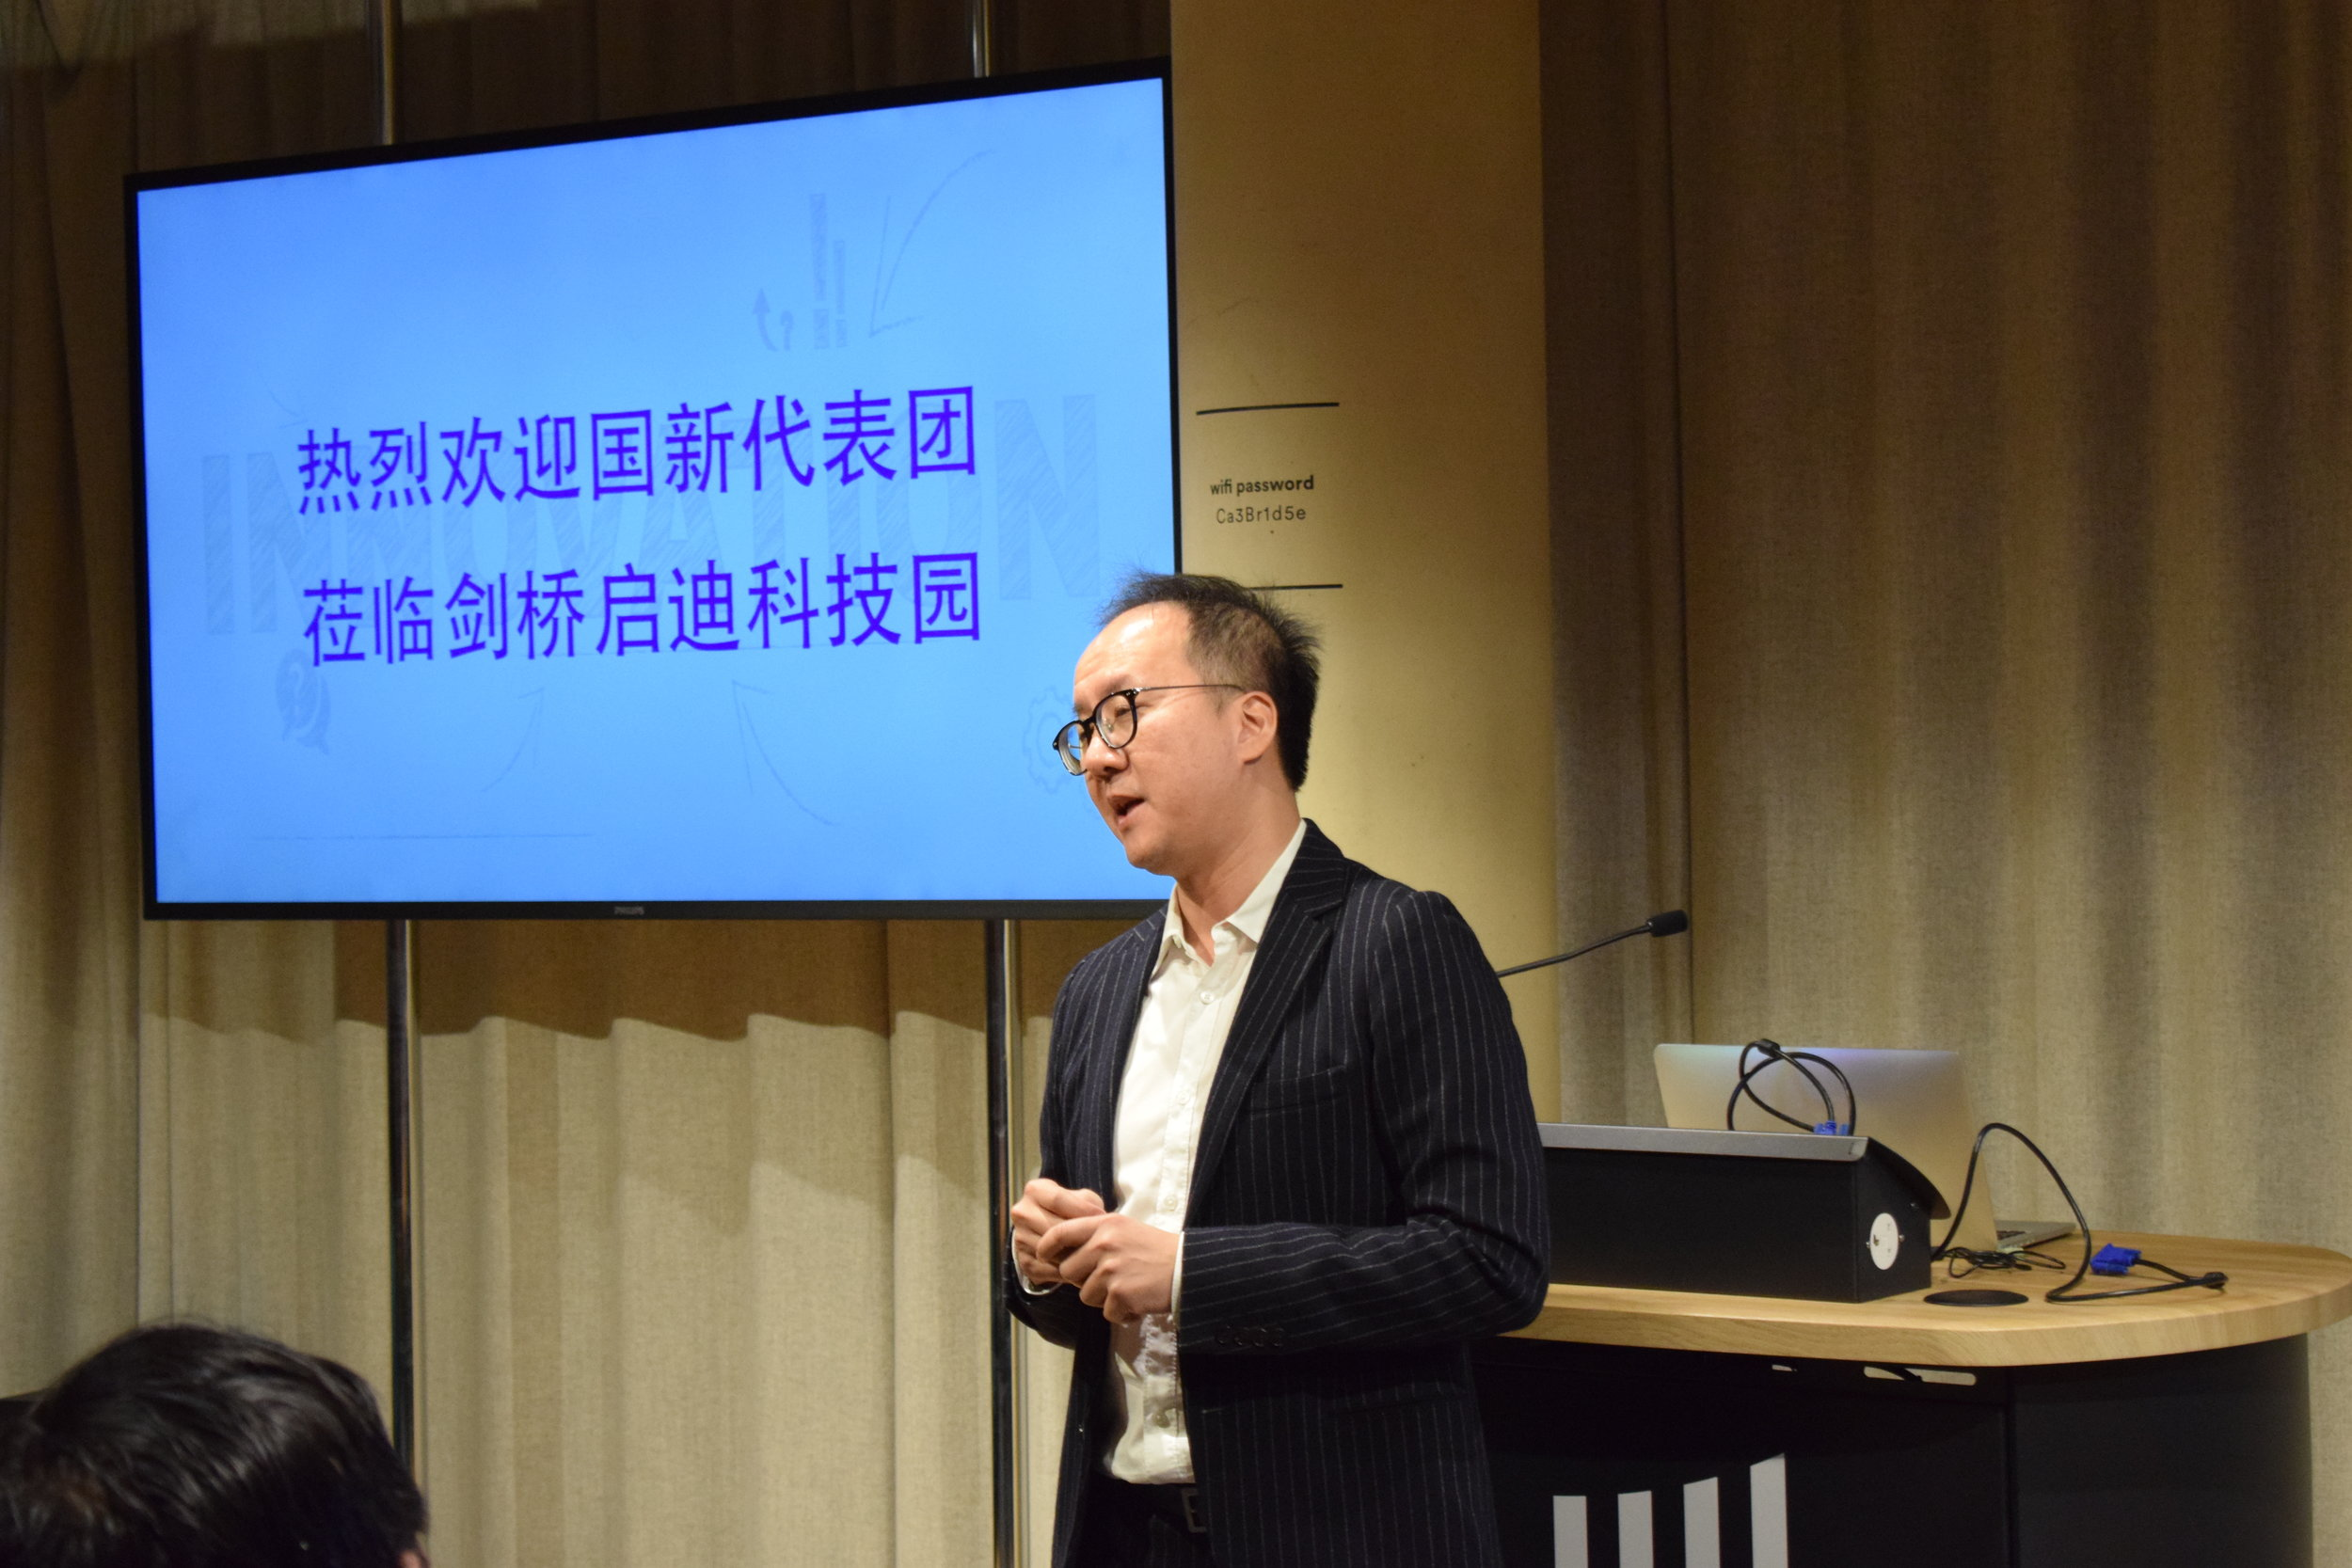 Zhigang Ma, Board of Directors of TUS Holdings and Chairman of the TUS Financial Group was delivering a speech.